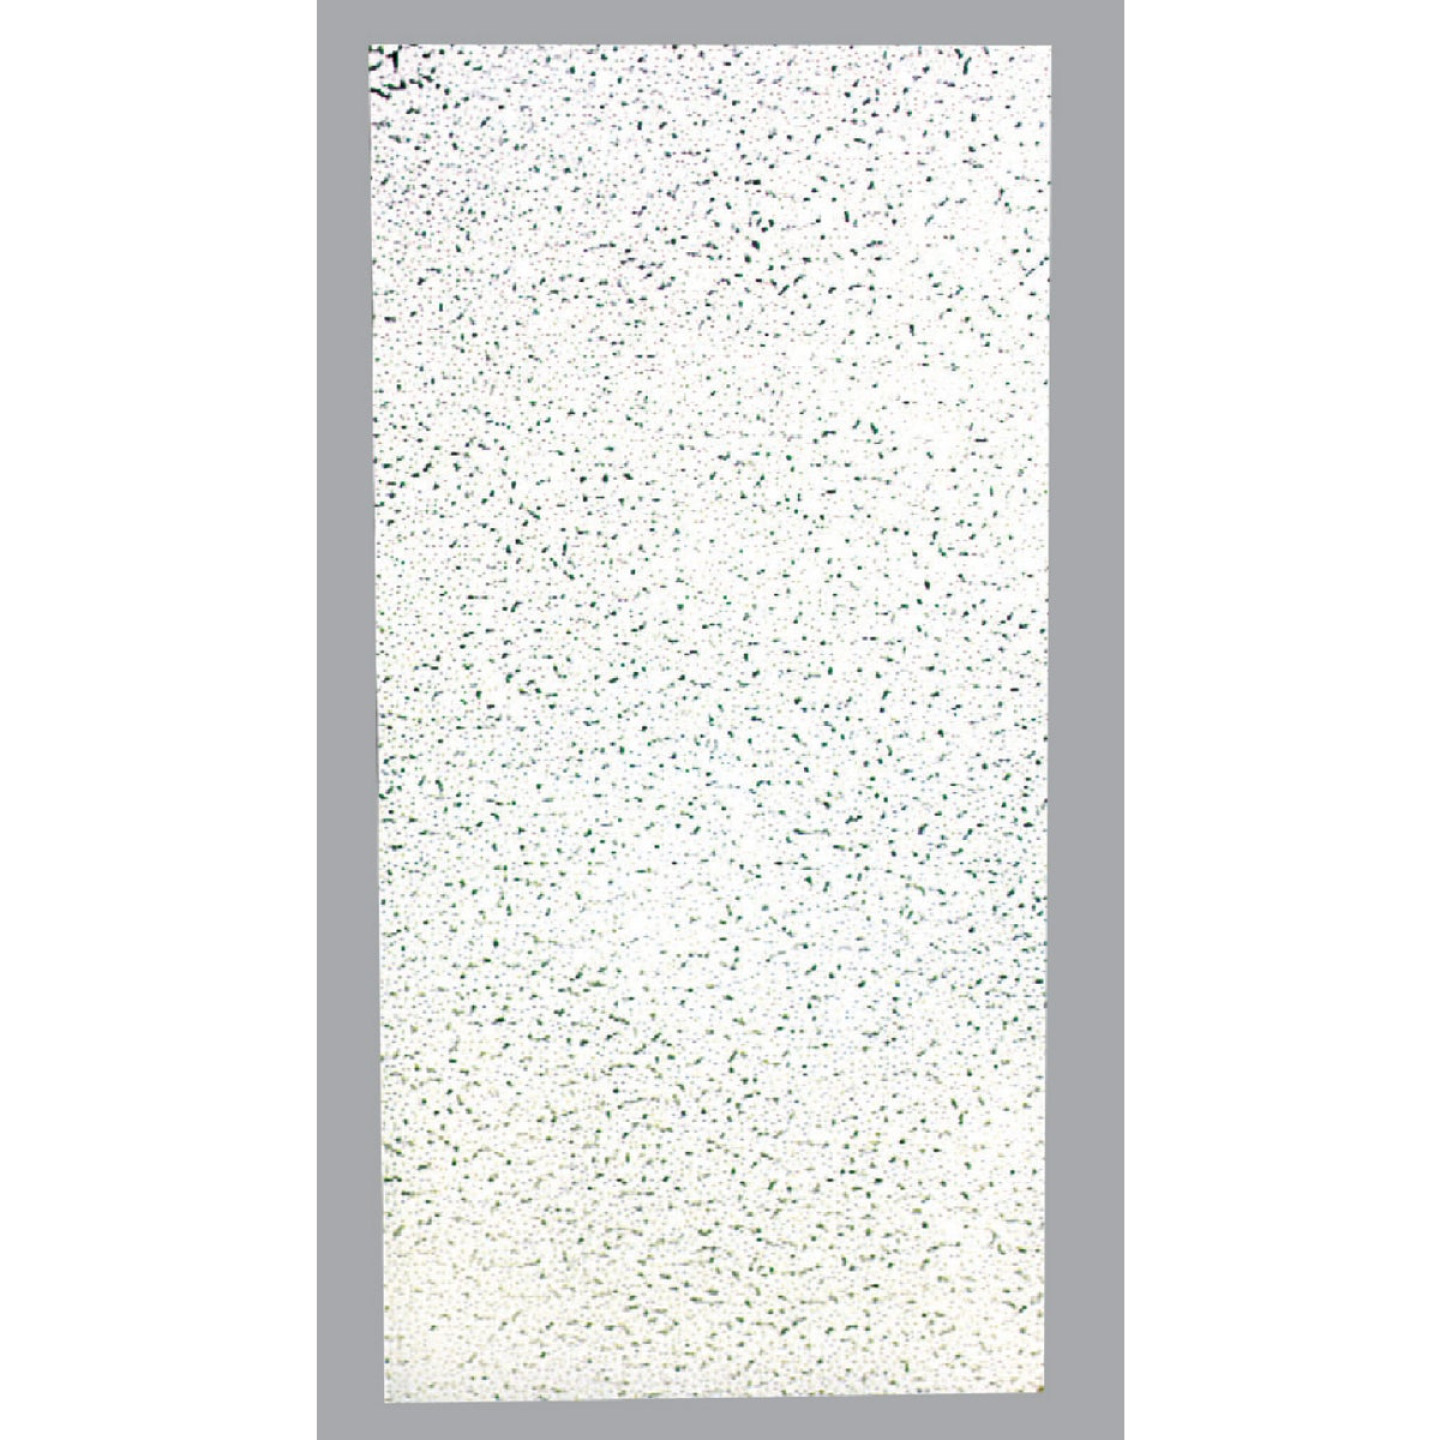 Fifth Avenue 2 Ft. x 4 Ft. Fire Rated White Mineral Fiber Ceiling Tile (8-Count) Image 1